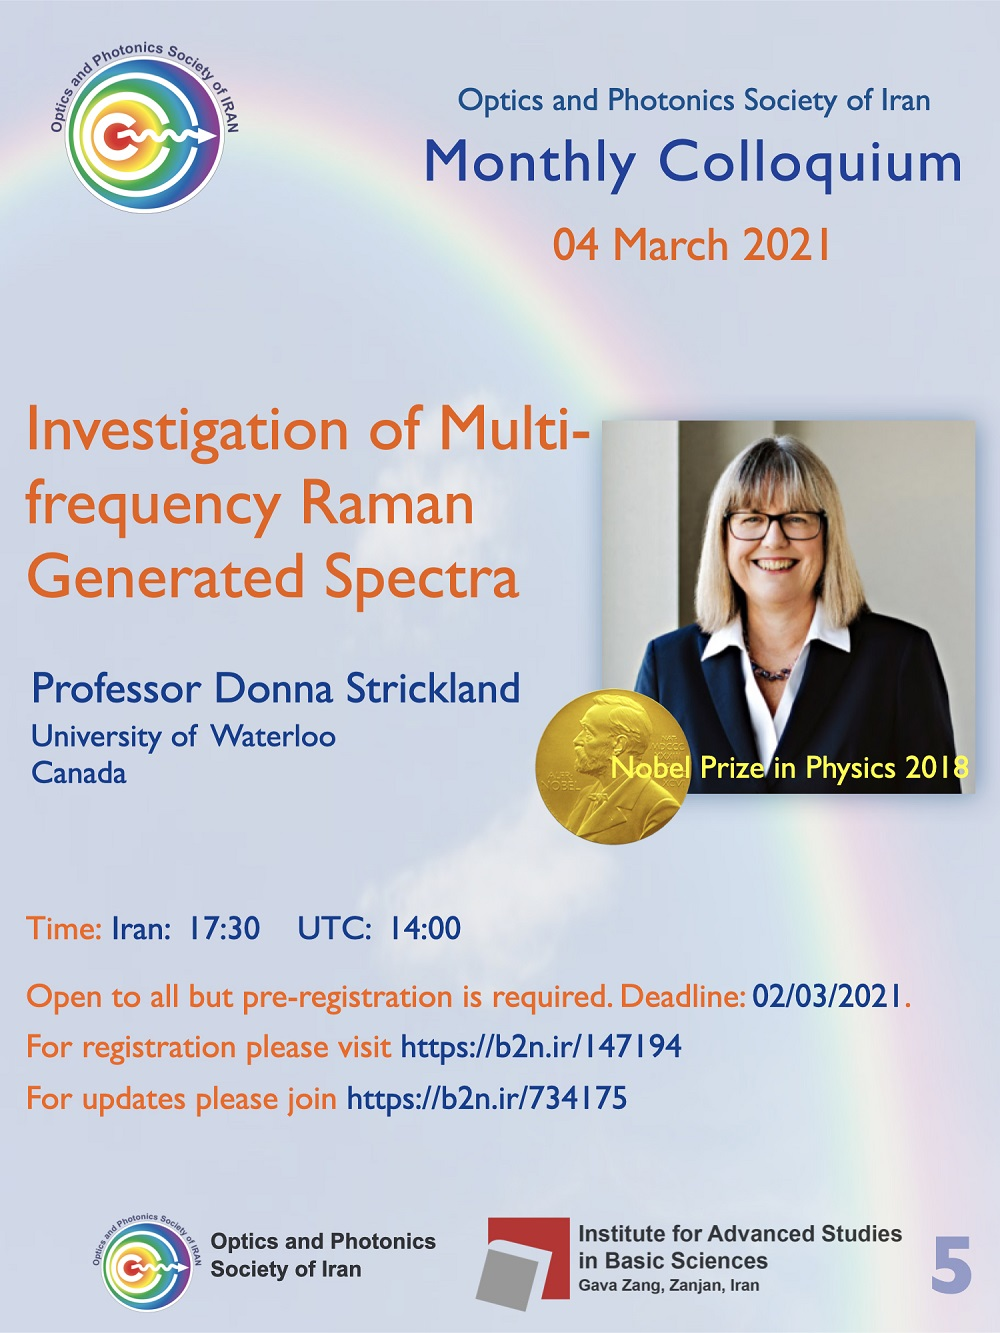 IASBS hosts Donna Strickland, 2018 Nobel Prize winner in Physics